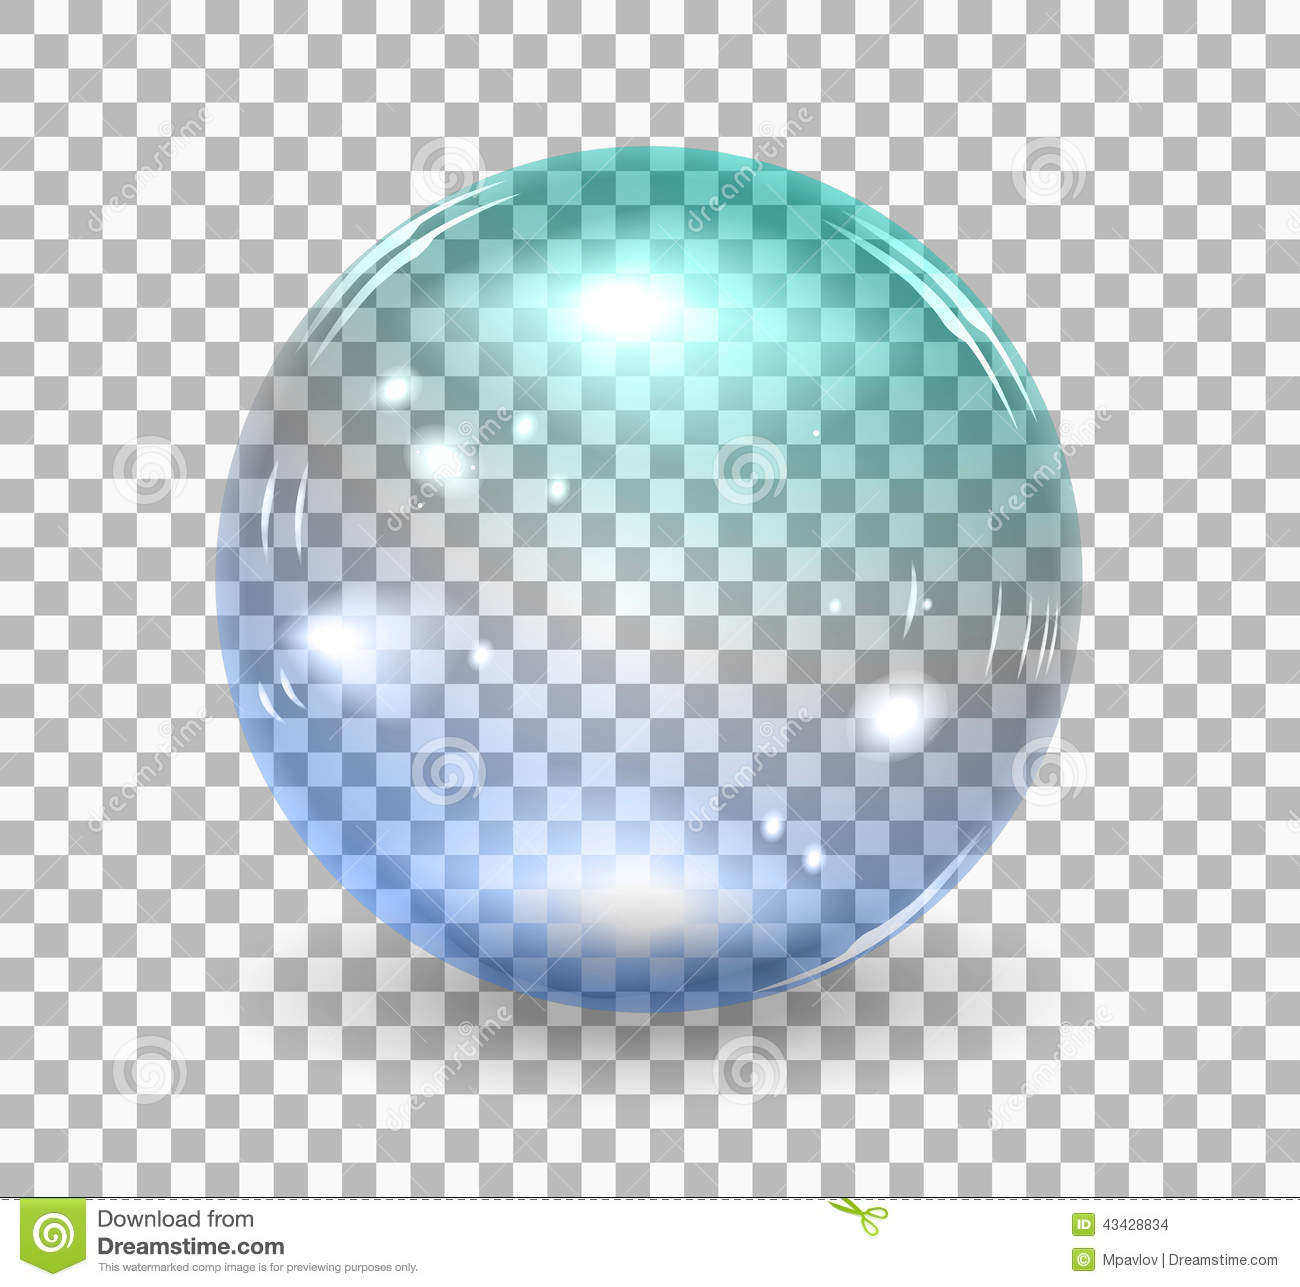 Soap bubble background download free vector art stock graphics - Royalty Free Vector Download Bubble Soap Stock